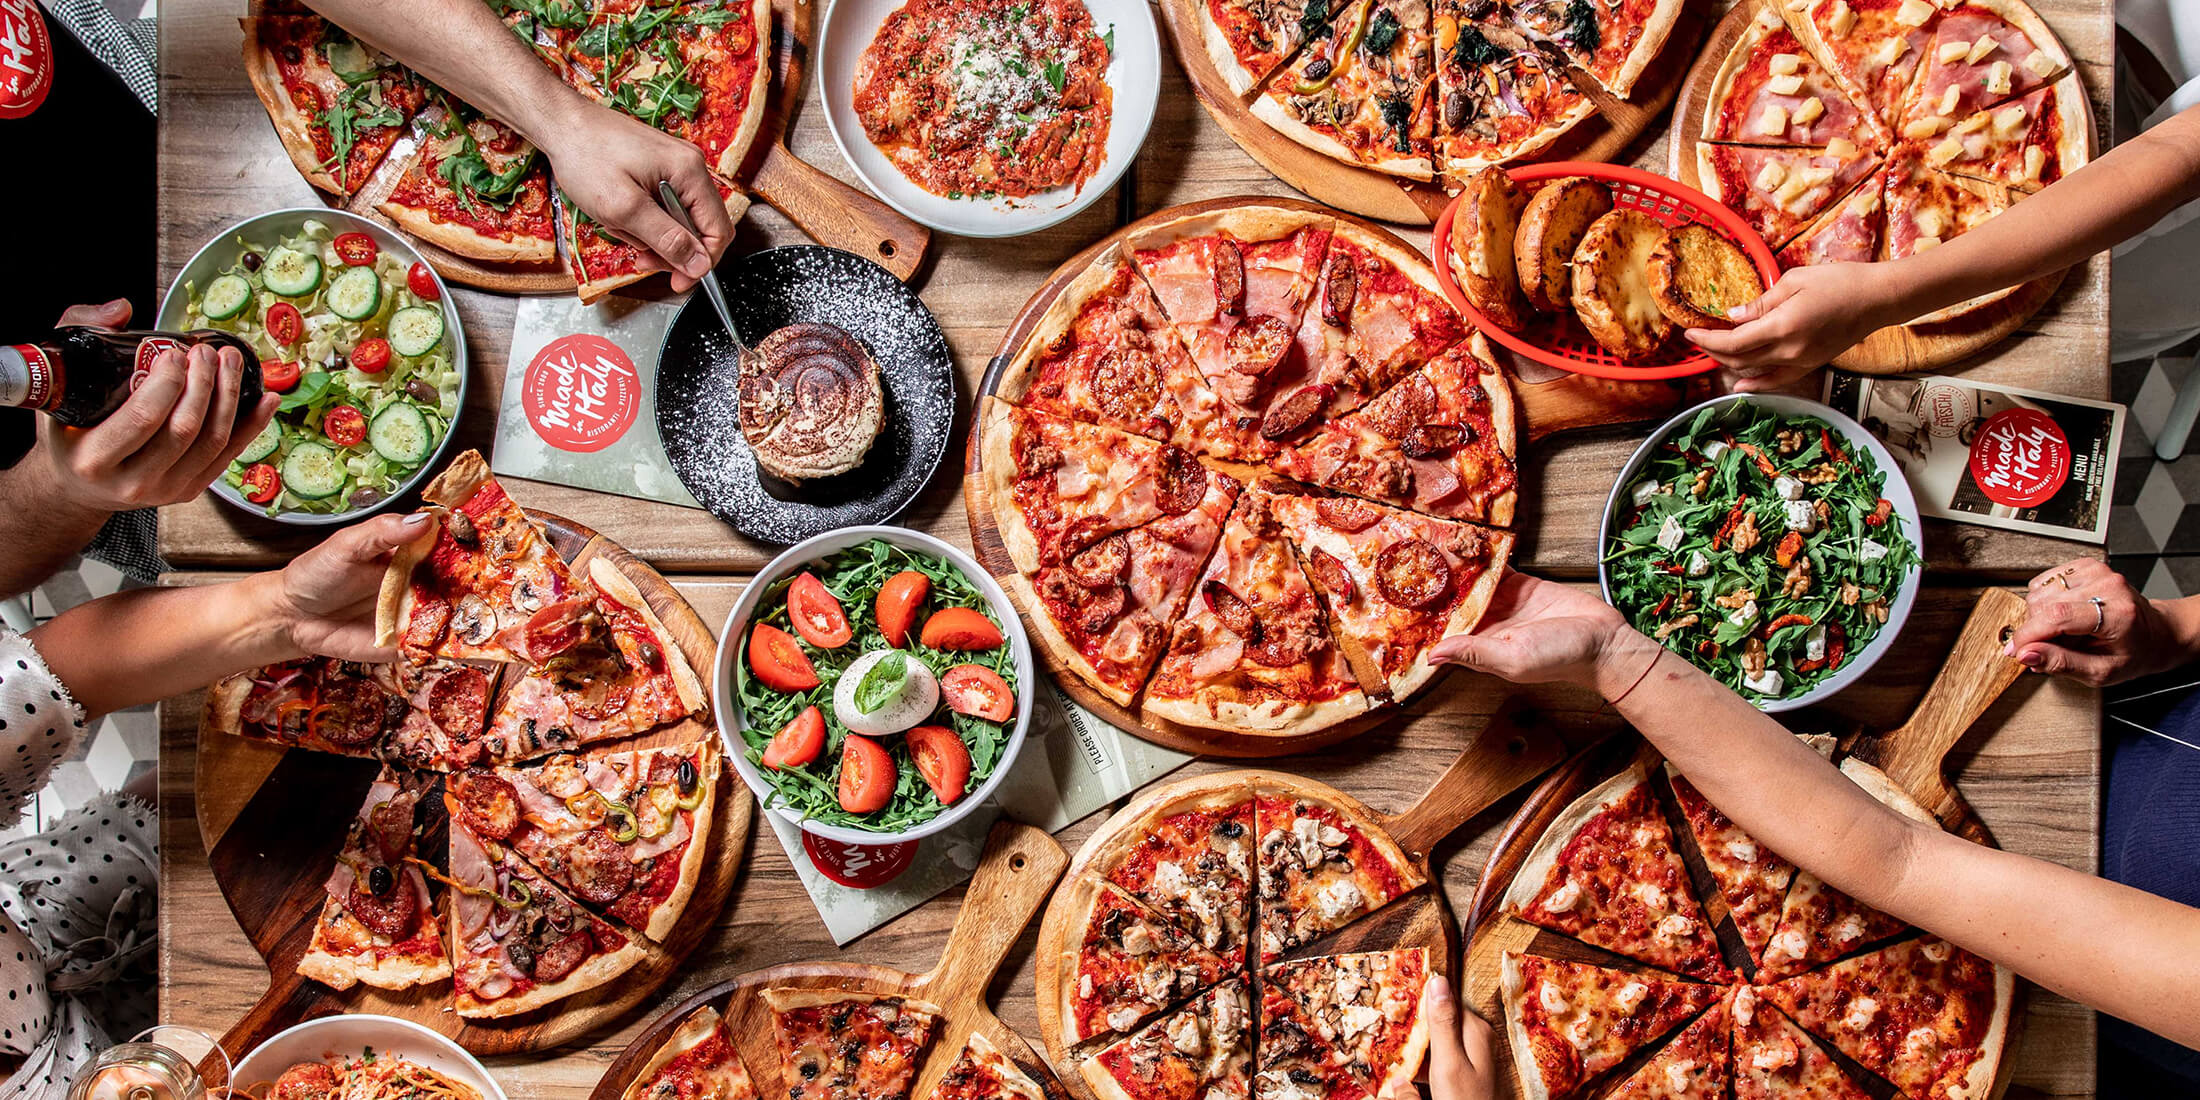 Made in Italy is an Italian restaurant in Annandale serving pizza and pasta including take away.